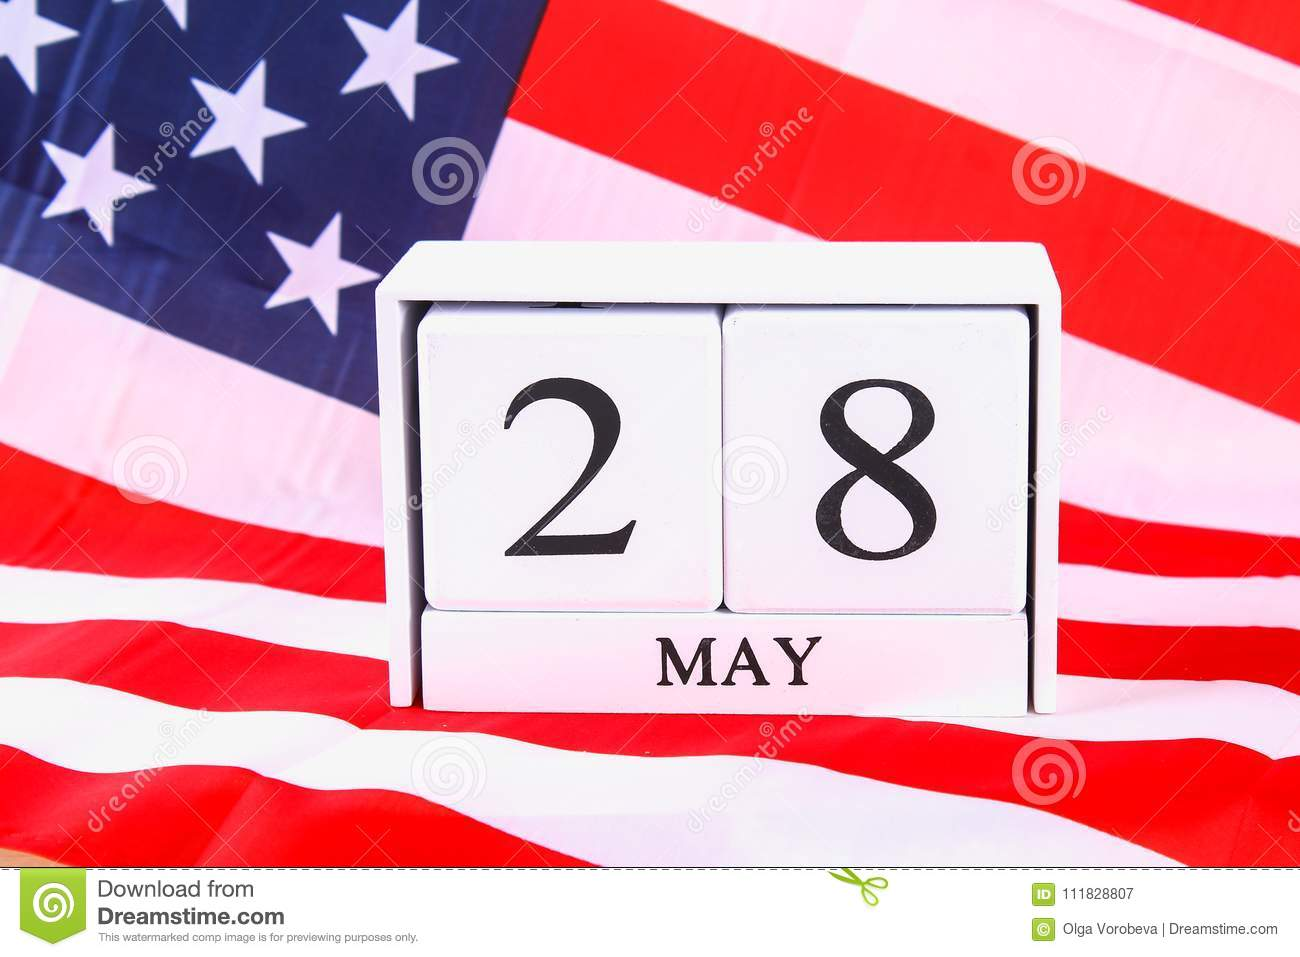 Usa memorial day concept with calendar and red remembrance poppy on download comp publicscrutiny Gallery